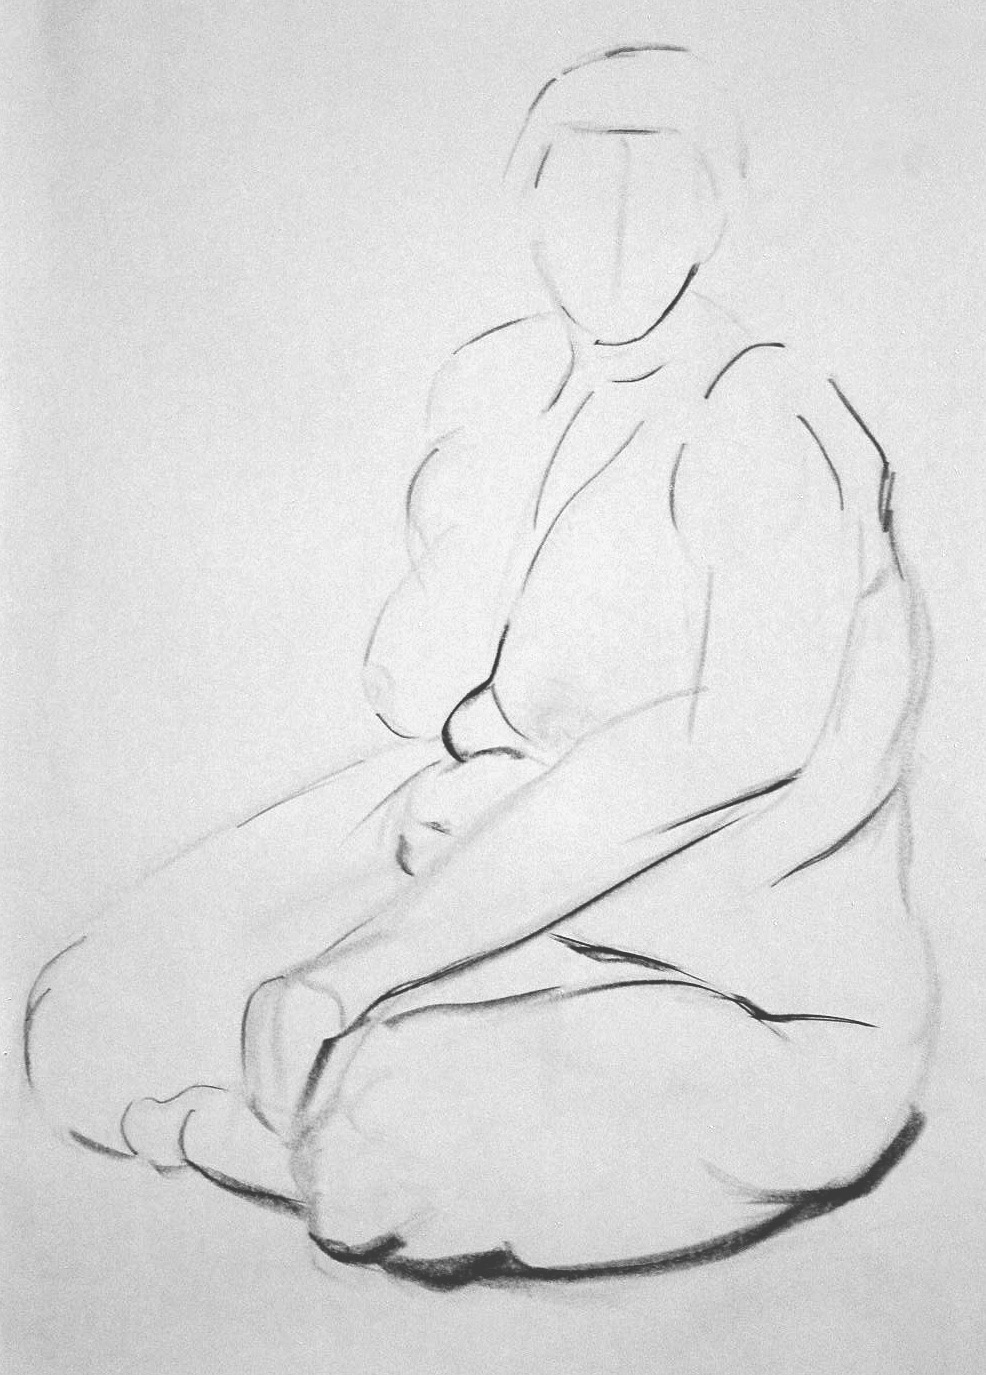 untitled (nude study), charcoal, 2004